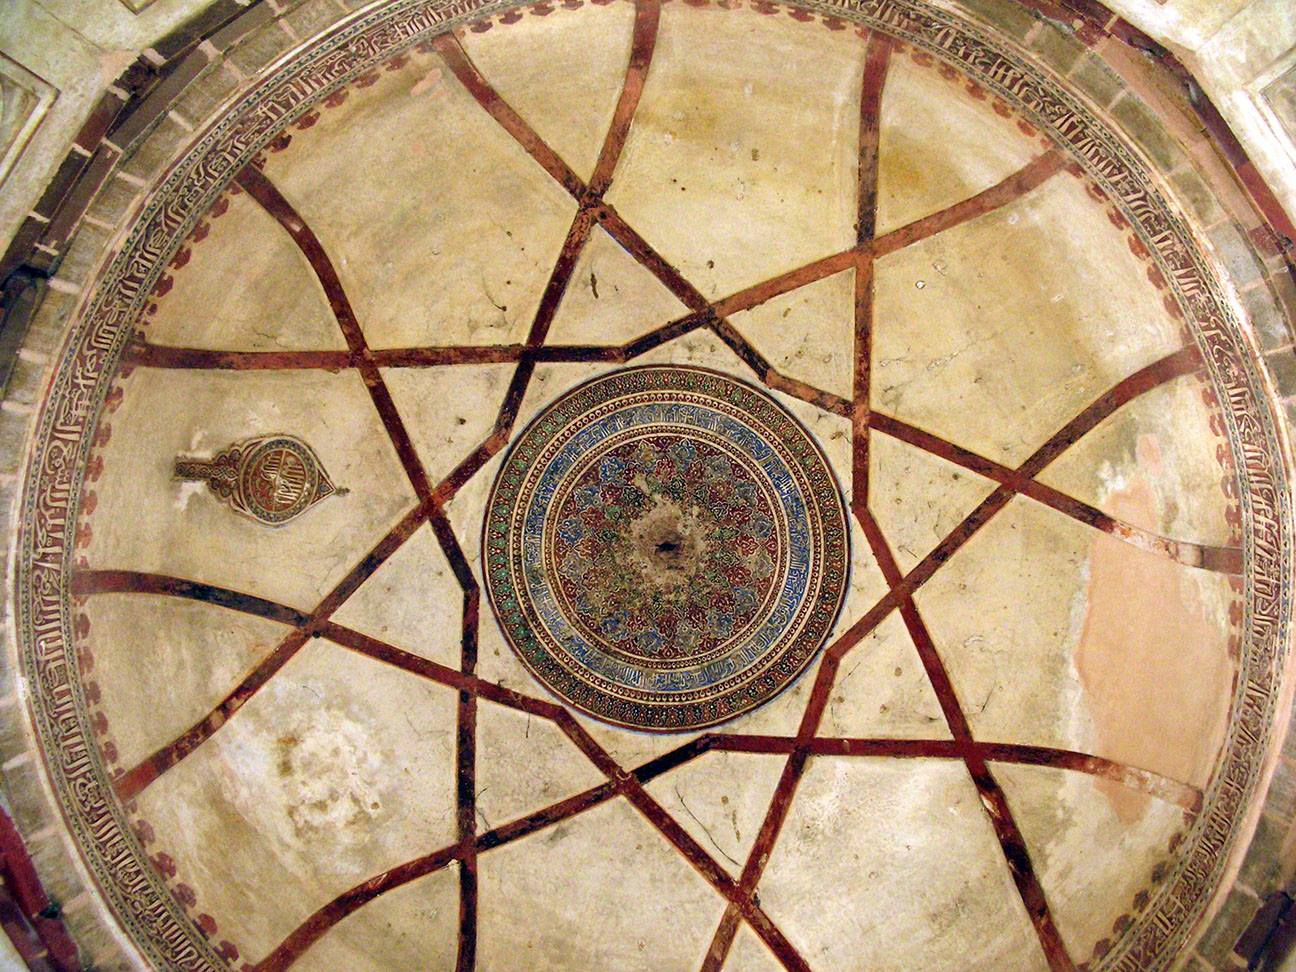 Look up towards the dome from inside the burial chamber.